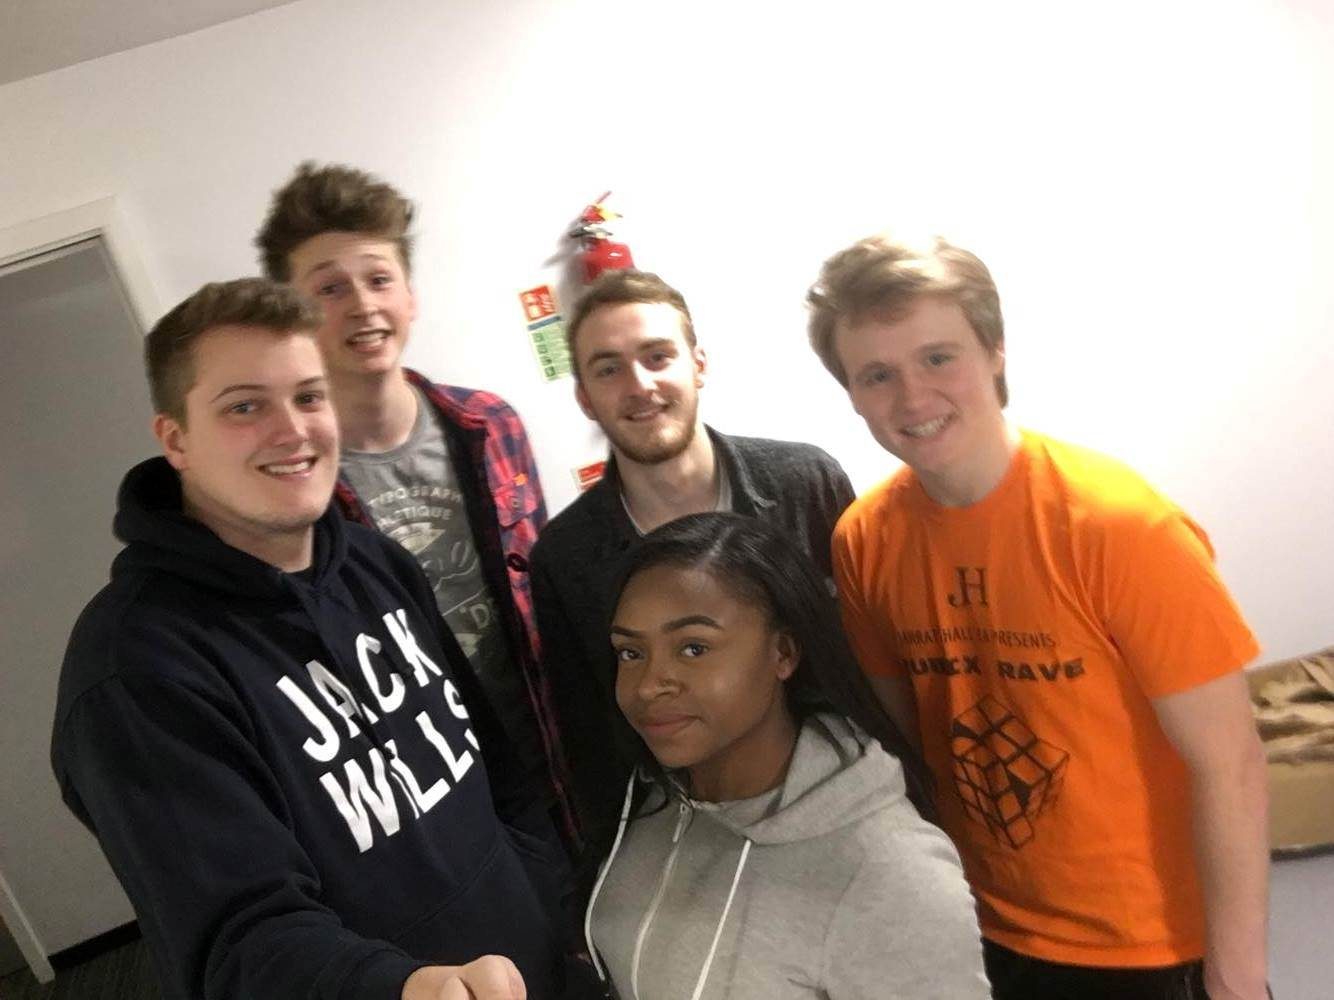 We are your current Residents' Association committee also known as RAs. From left we have Clinton, Axel, Rhia, Taylor and Richard